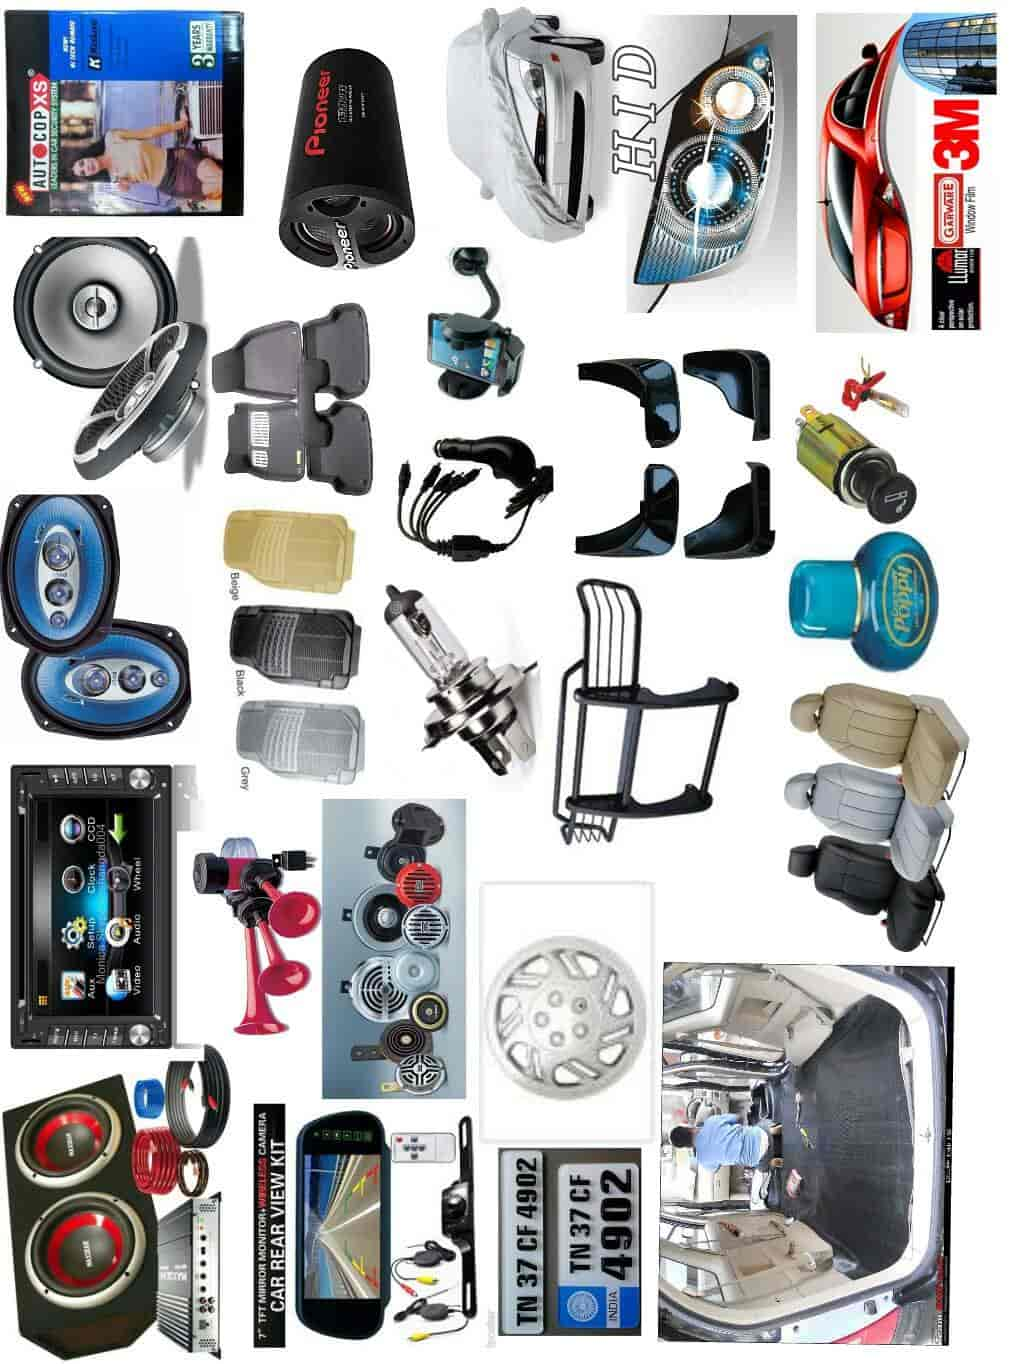 Maharashtra Car Accessories And Car Decor Dwarka Car Accessory Dealers In Nashik Justdial